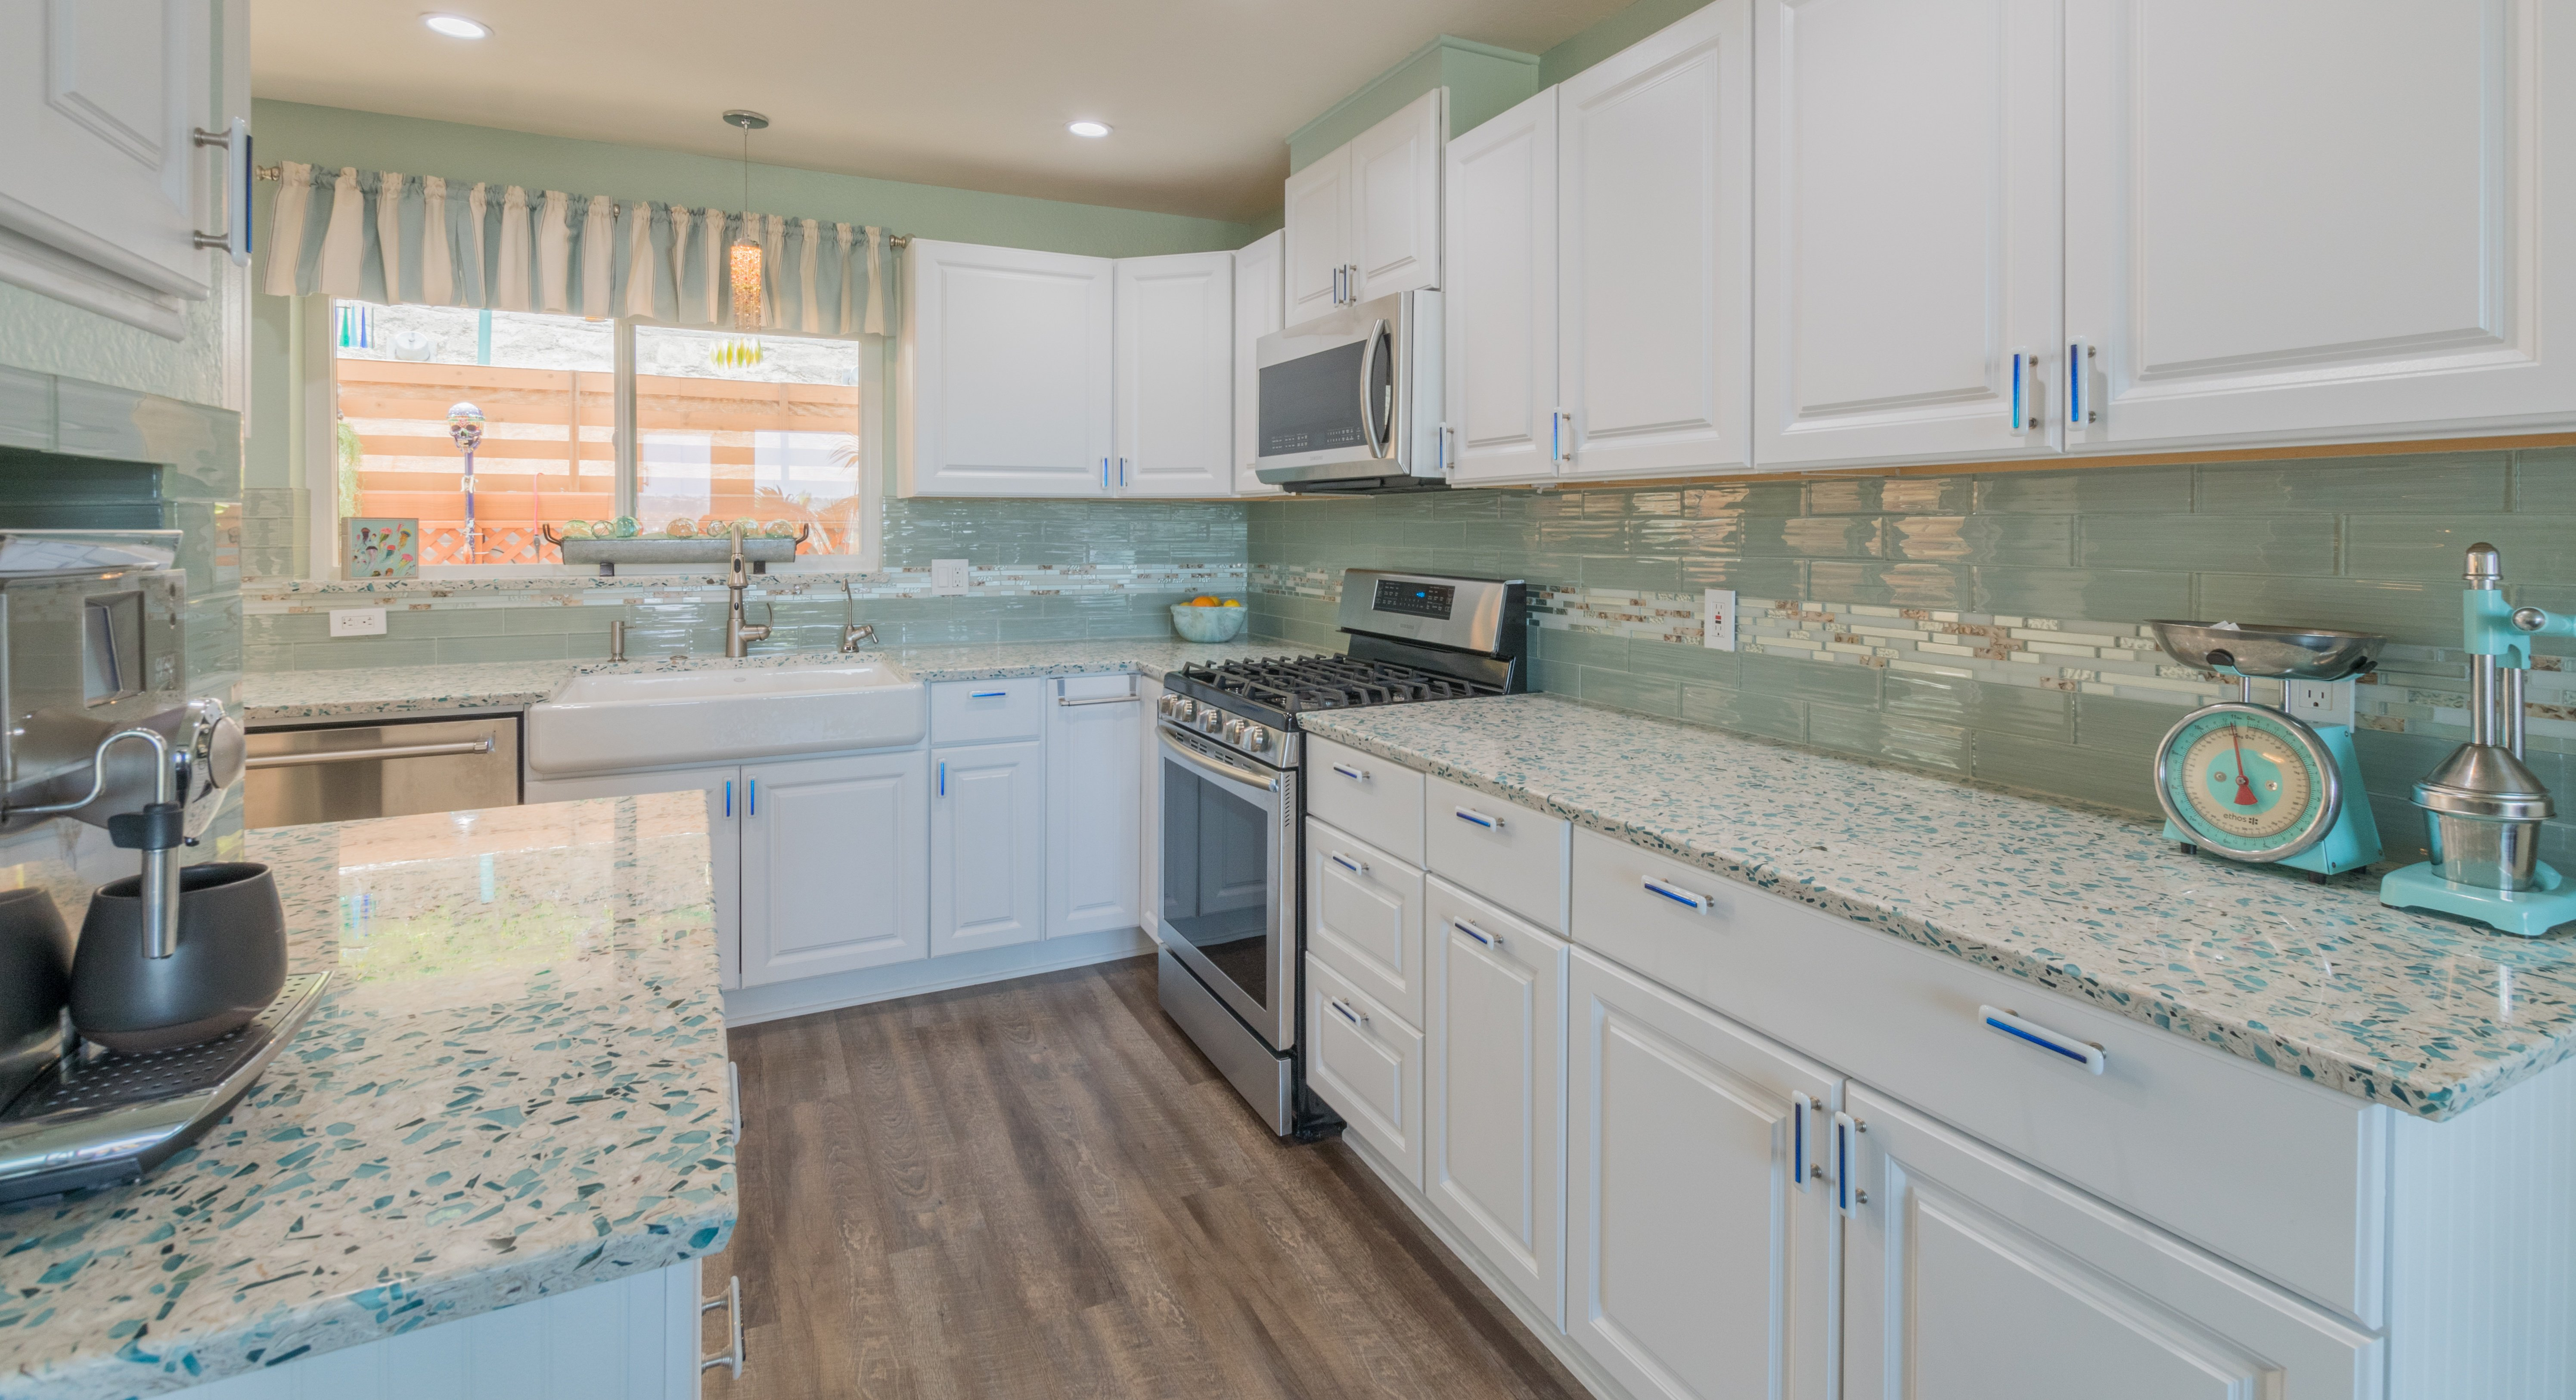 - Cali Couple Brings The Beach Inside For A Coastal Kitchen With